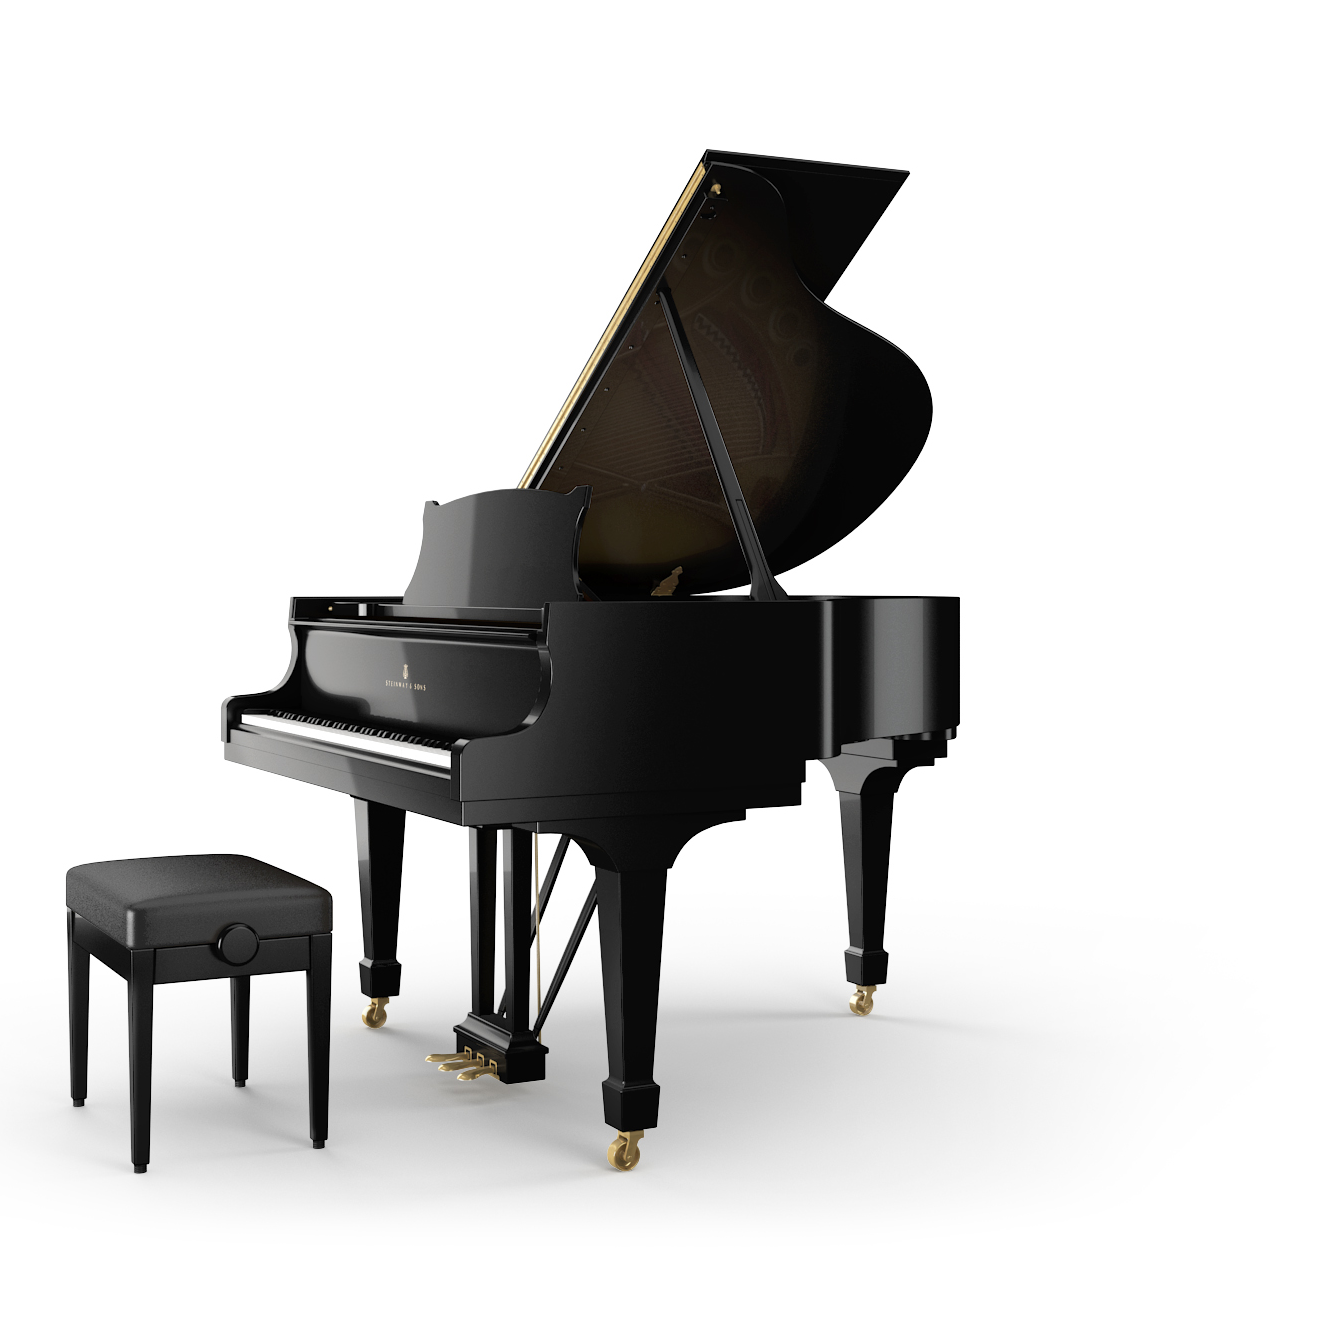 Steinway sons grand piano s 155 the piano details for Smallest piano size